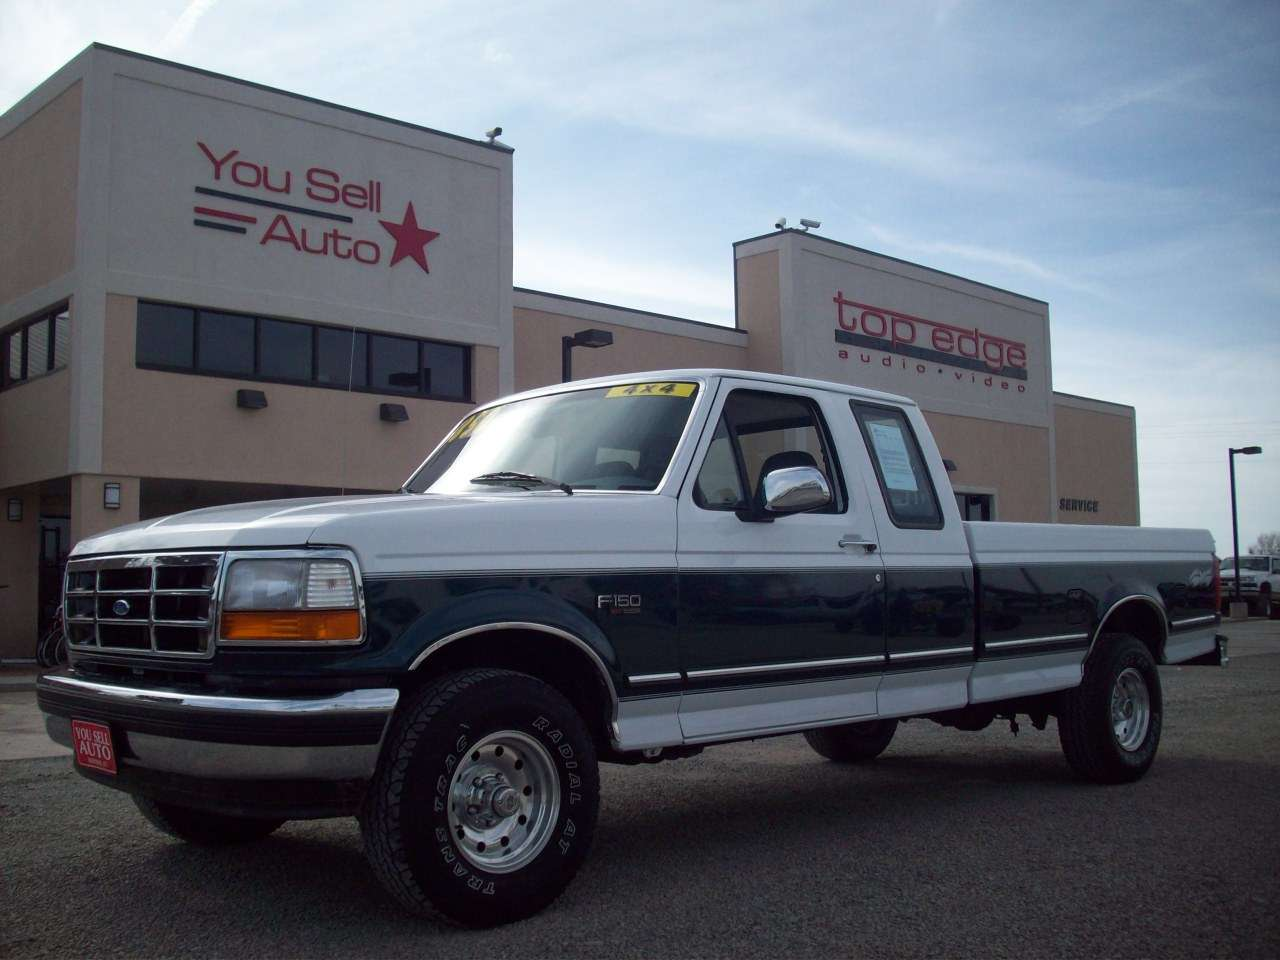 medium resolution of 1995 ford f150 xlt 4x4 extended cab pickup sold